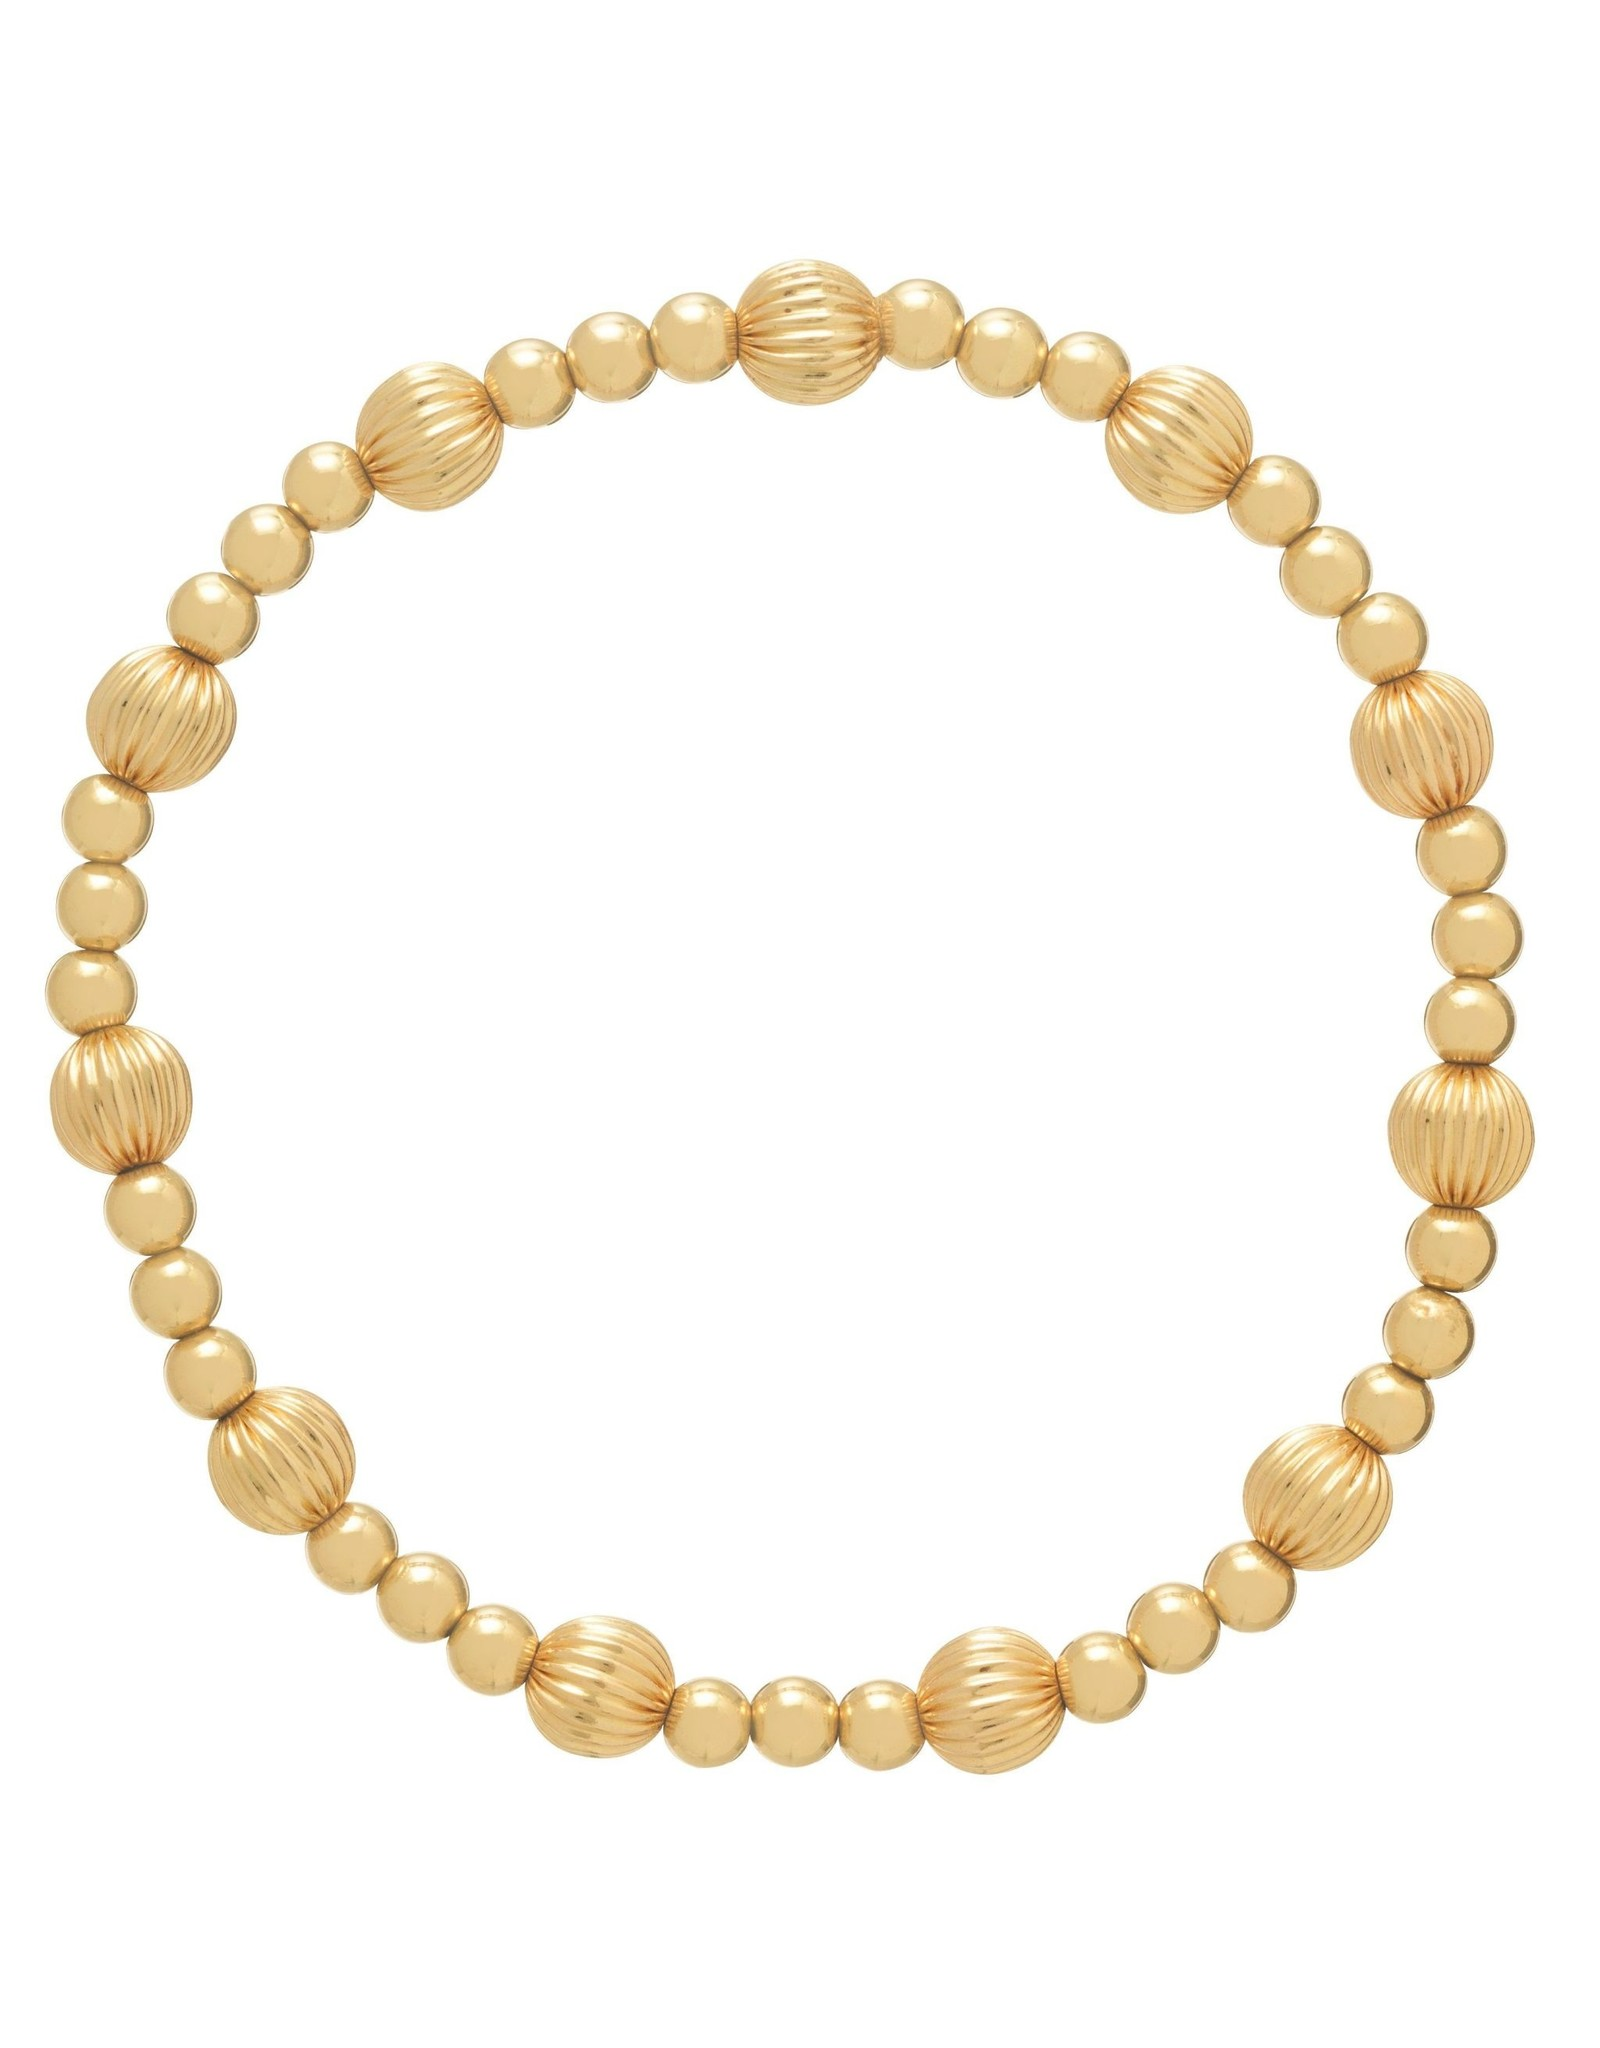 Extends Dignity Gold Sincerity Pattern 6mm Bead Brace